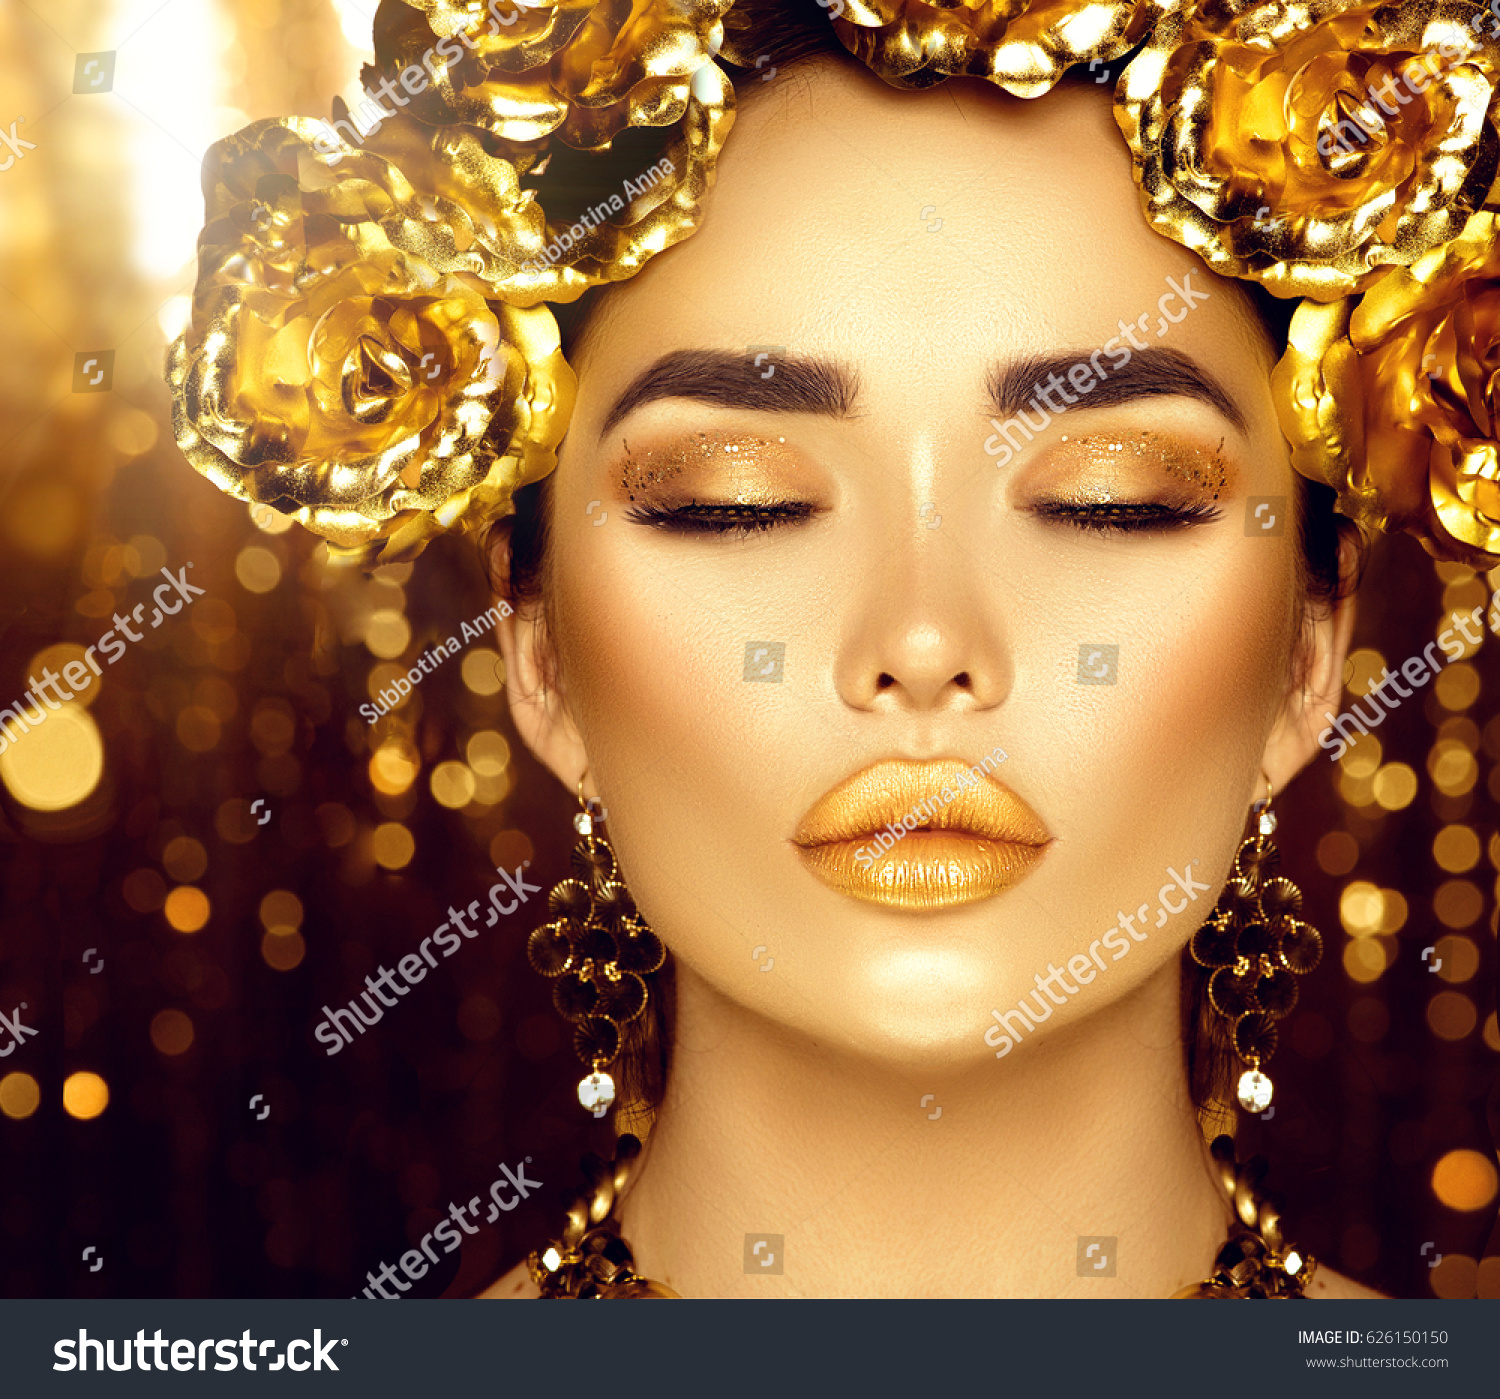 Gold Woman Holiday Makeup Beauty Fashion Model Girl With Golden Make Up Flowers Hairstyle